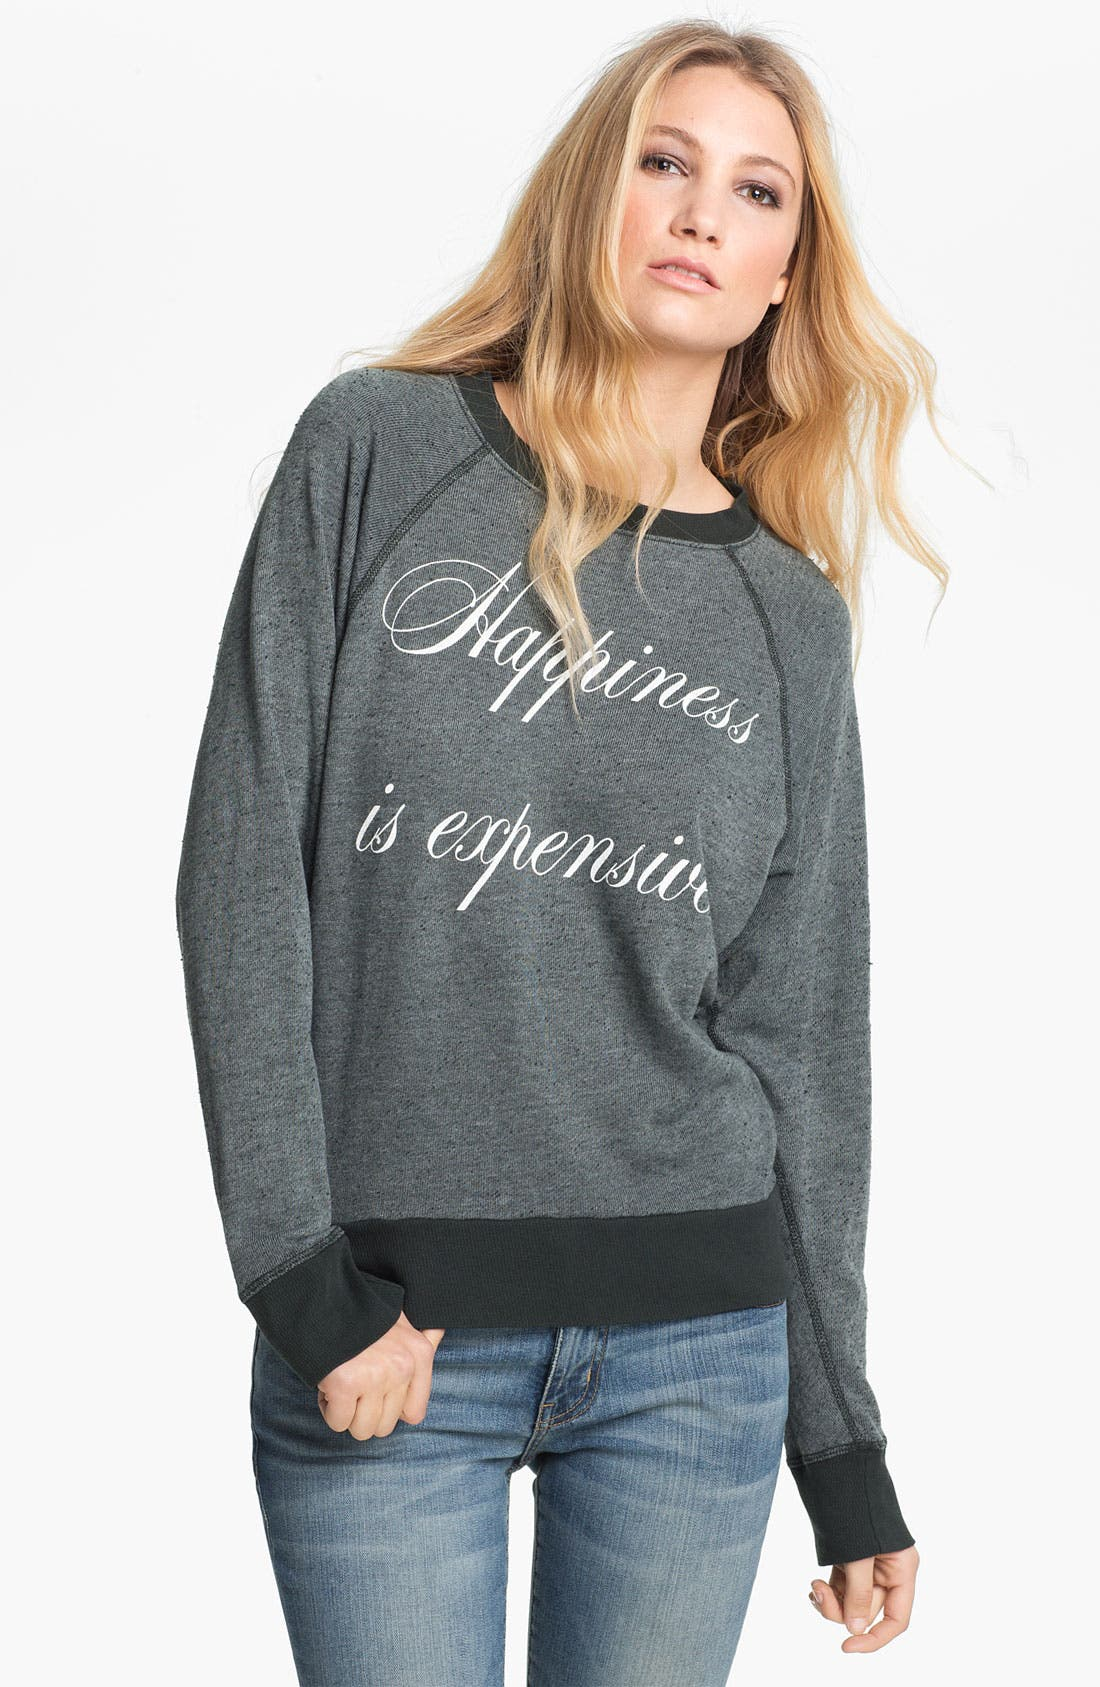 Alternate Image 1 Selected - Wildfox 'Happiness Is Expensive' Graphic Sweatshirt